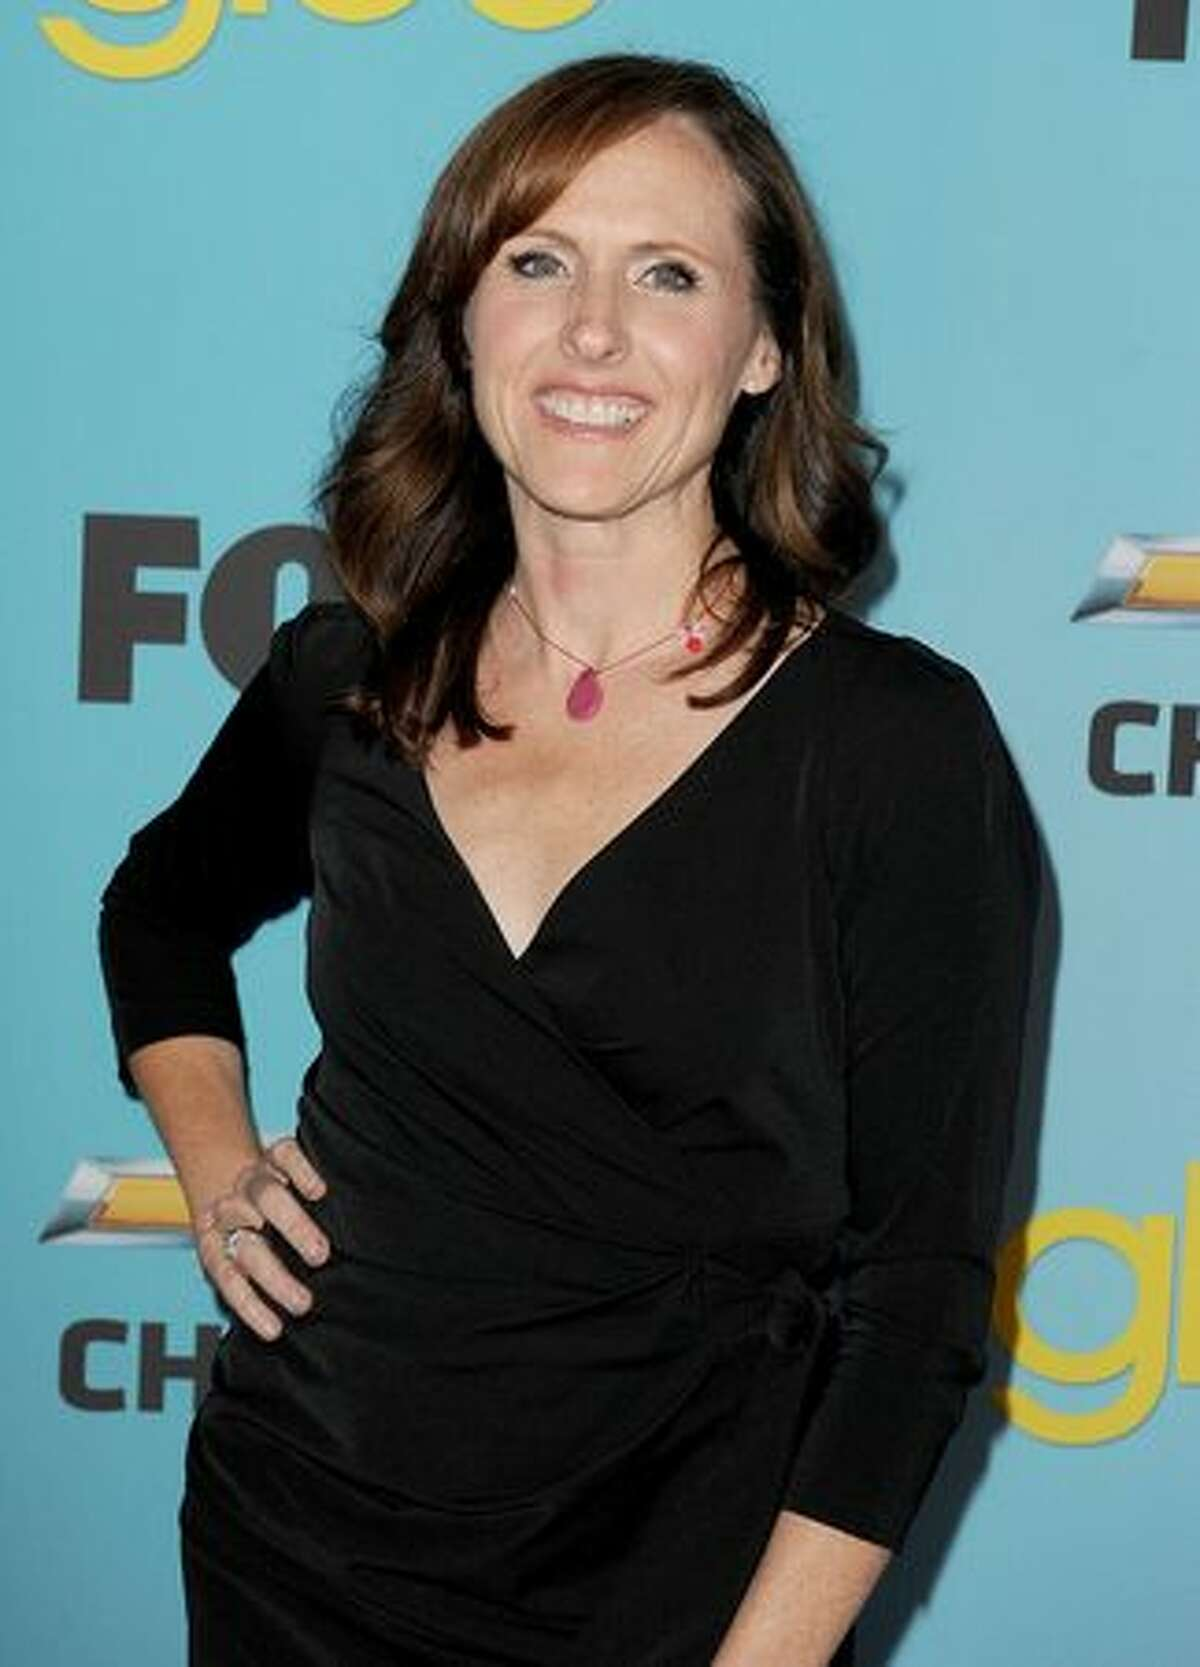 Actress Molly Shannon arrives at Fox's